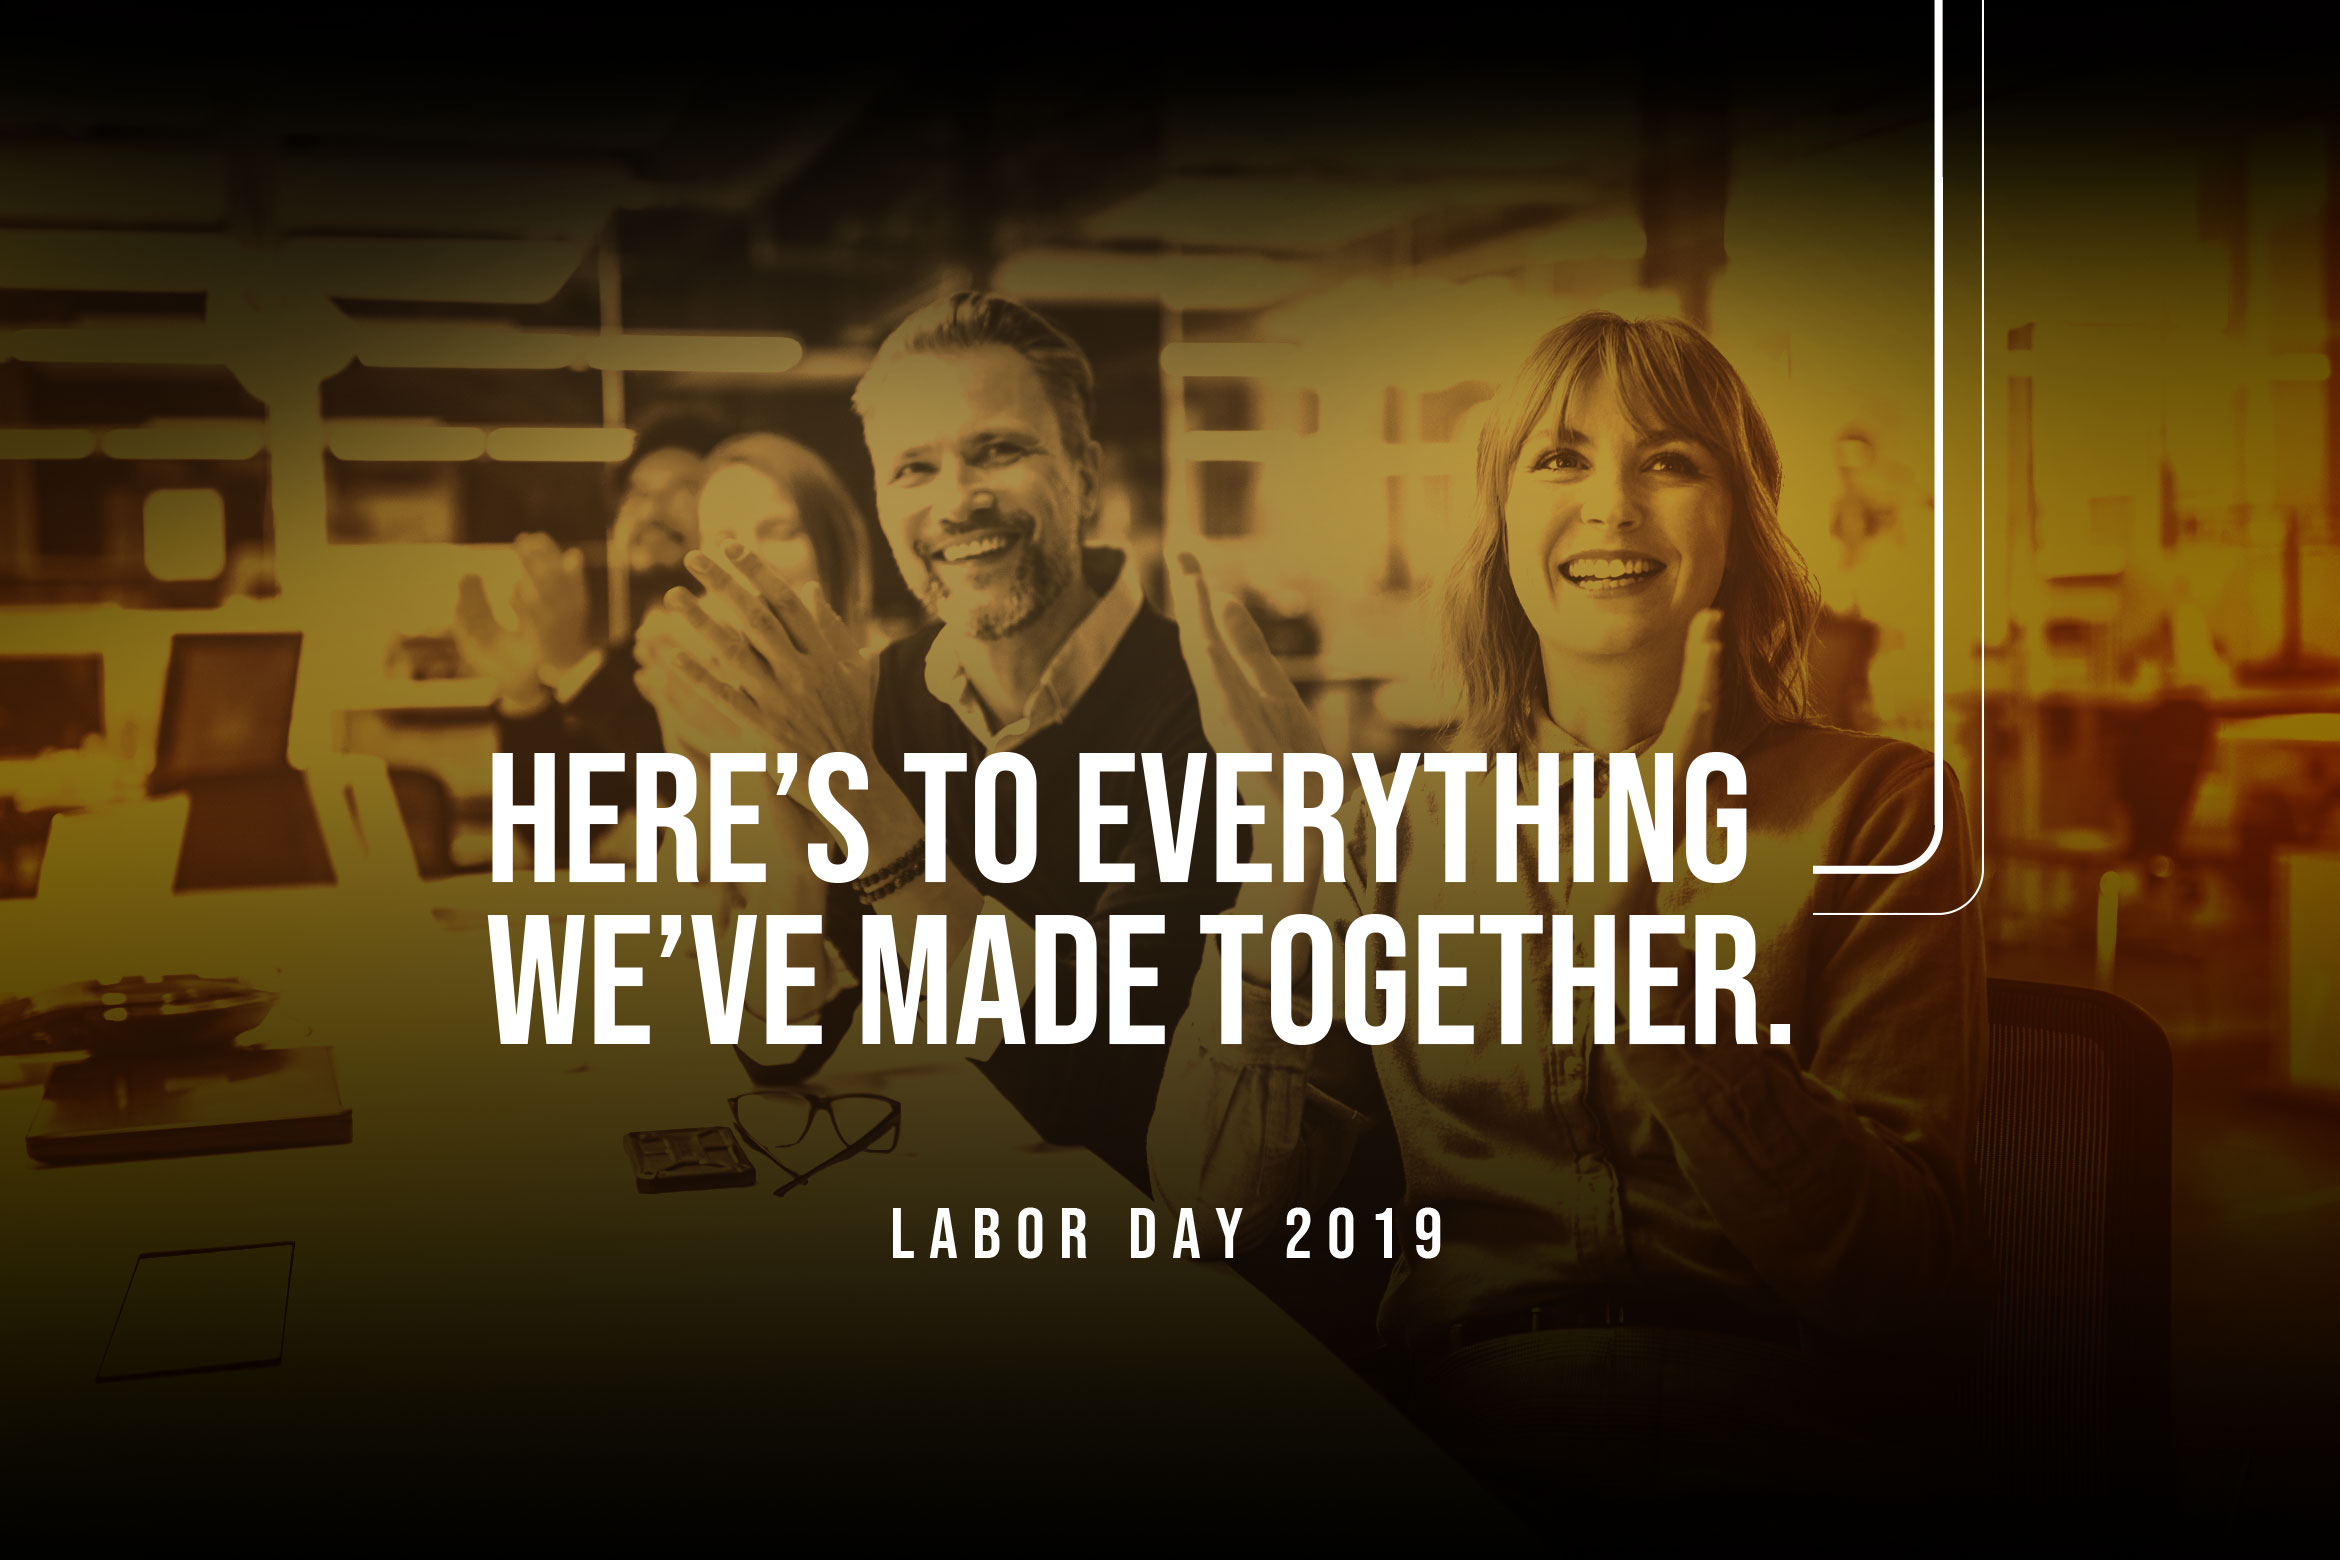 Here's to everything we've made togehter. Labor day 2019